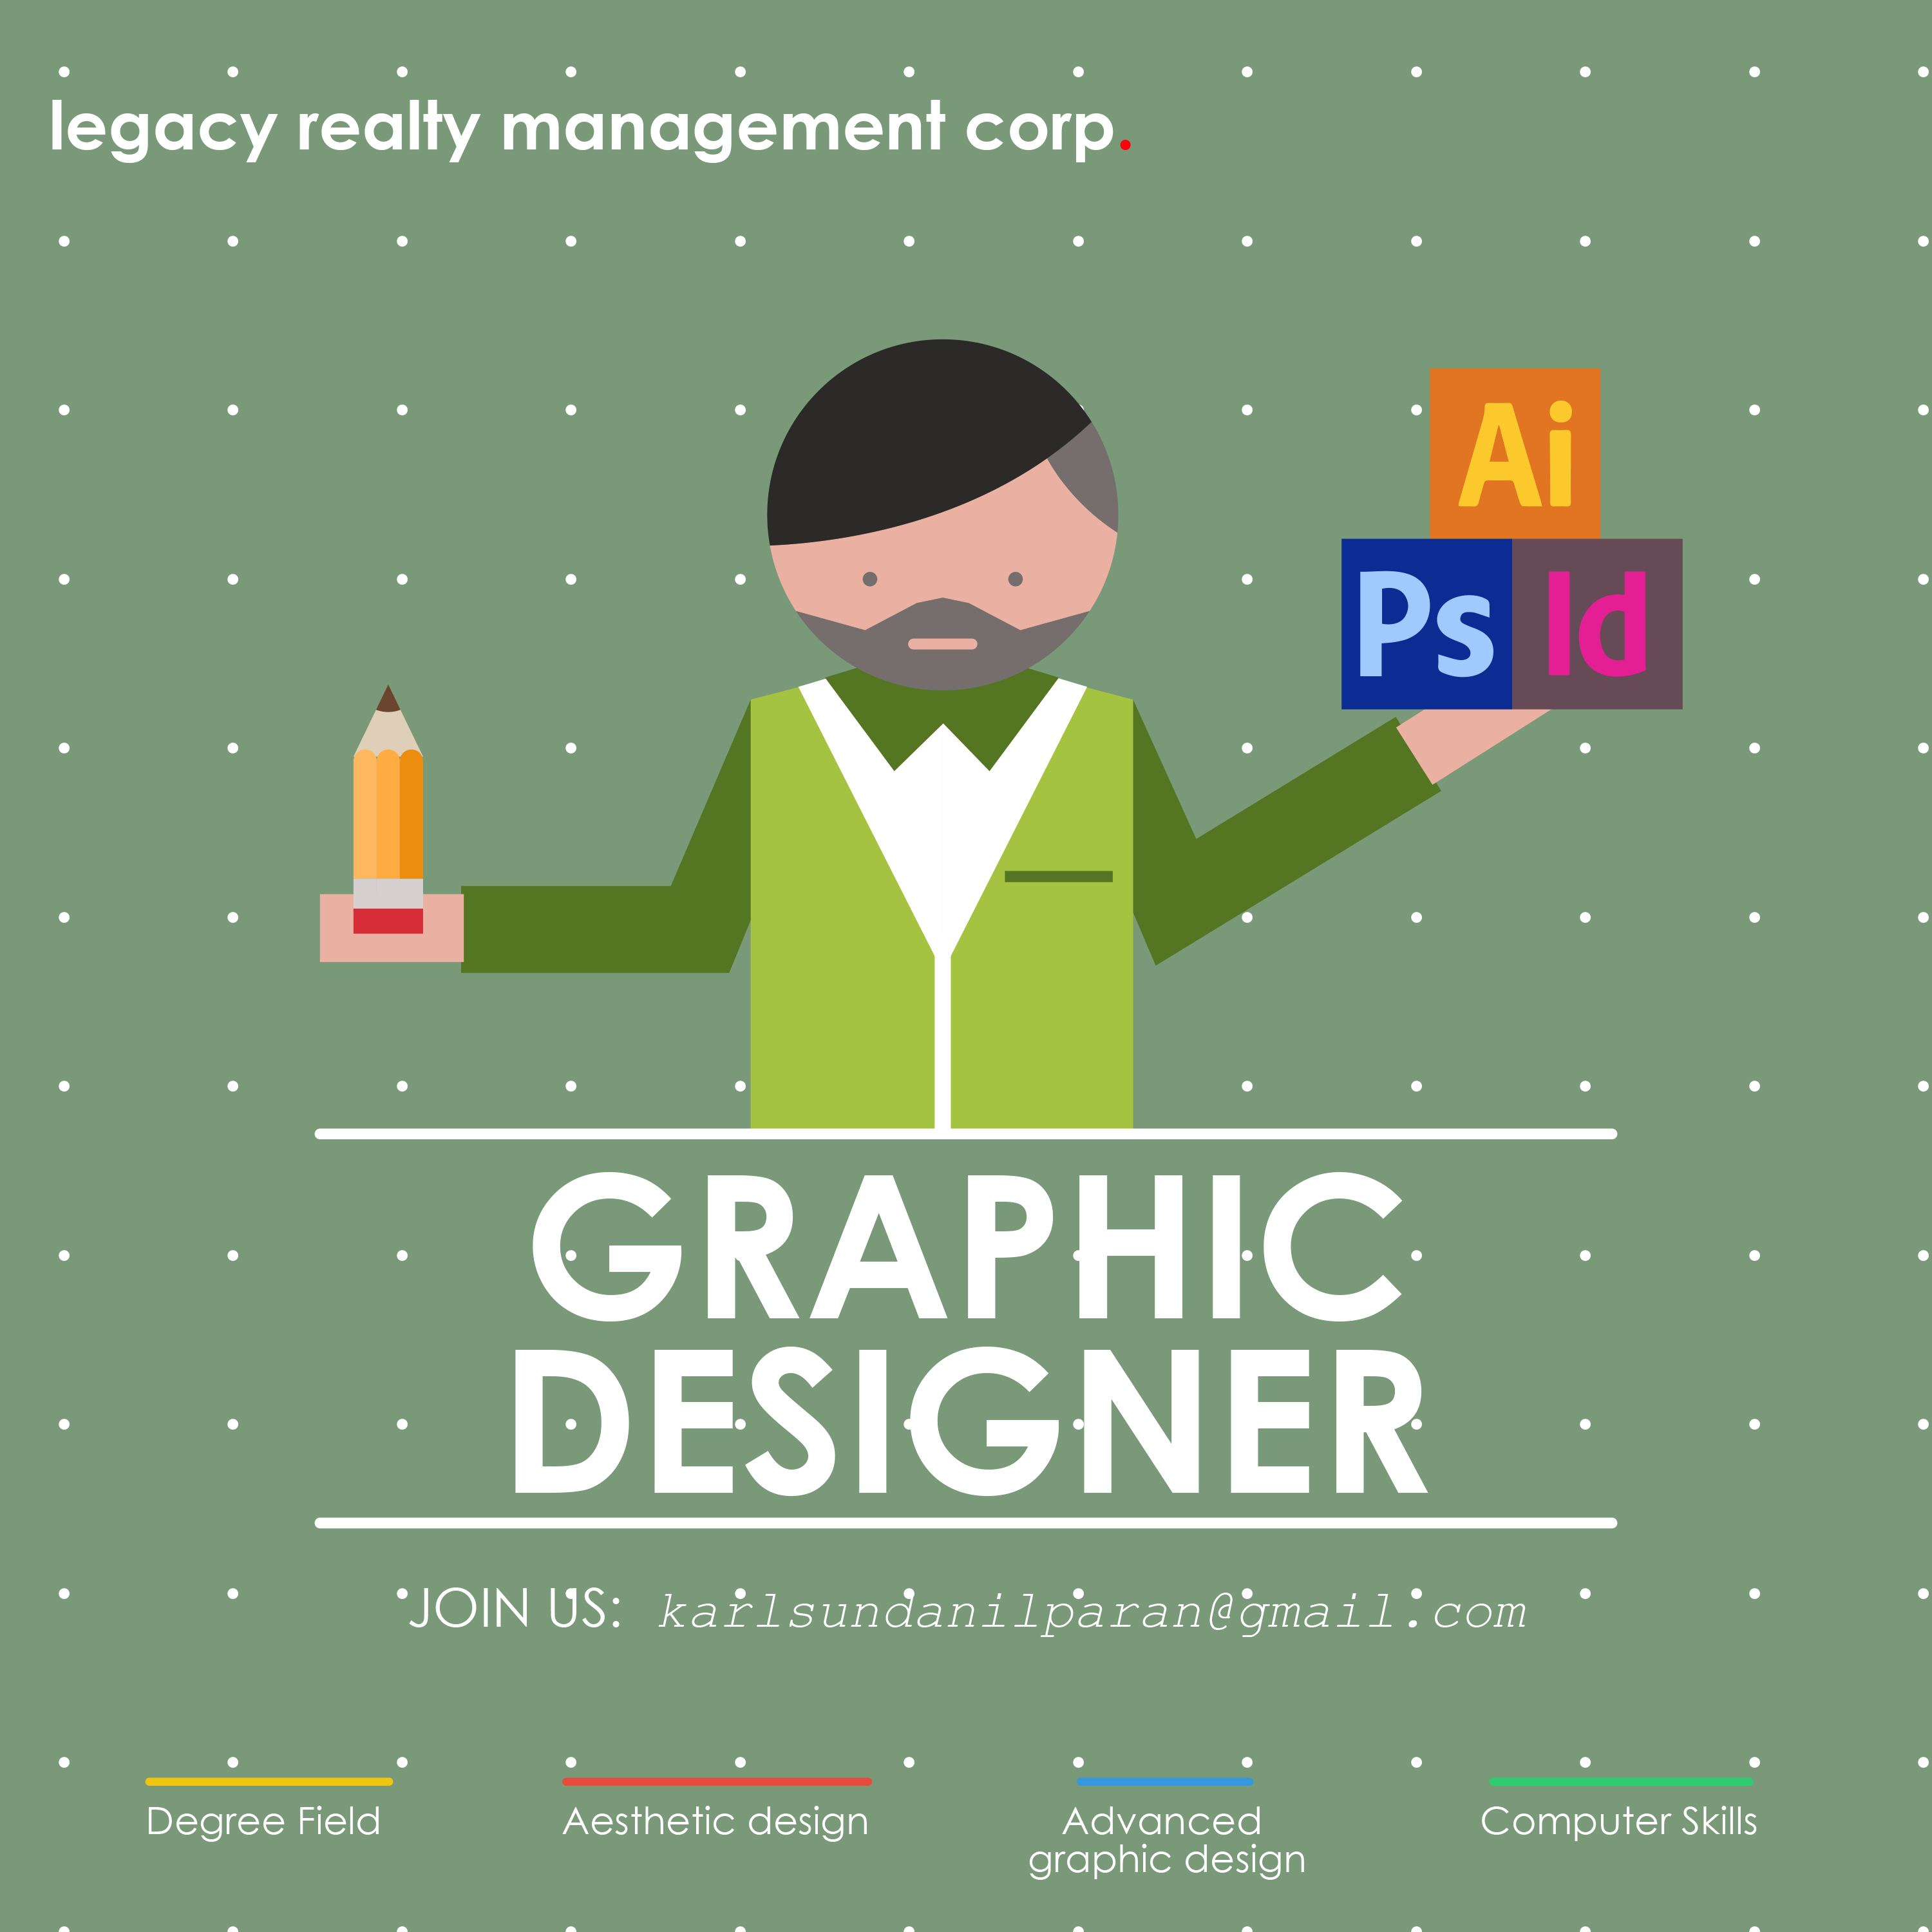 Hiring Graphic Designer poster Job poster, Graphic